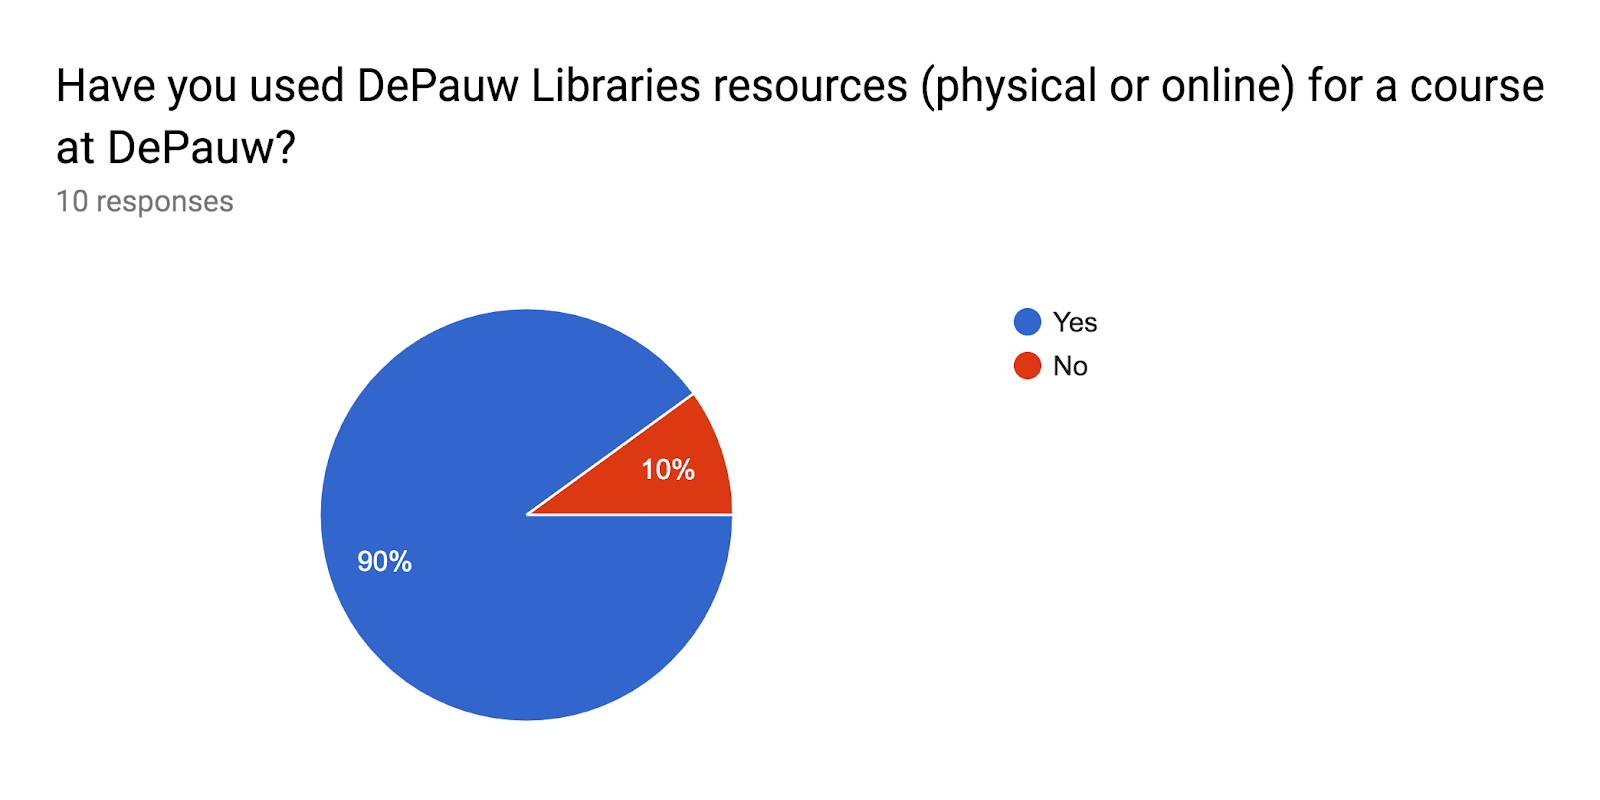 Forms response chart. Question title: Have you used DePauw Libraries resources (physical or online) for a course at DePauw?. Number of responses: 10 responses.